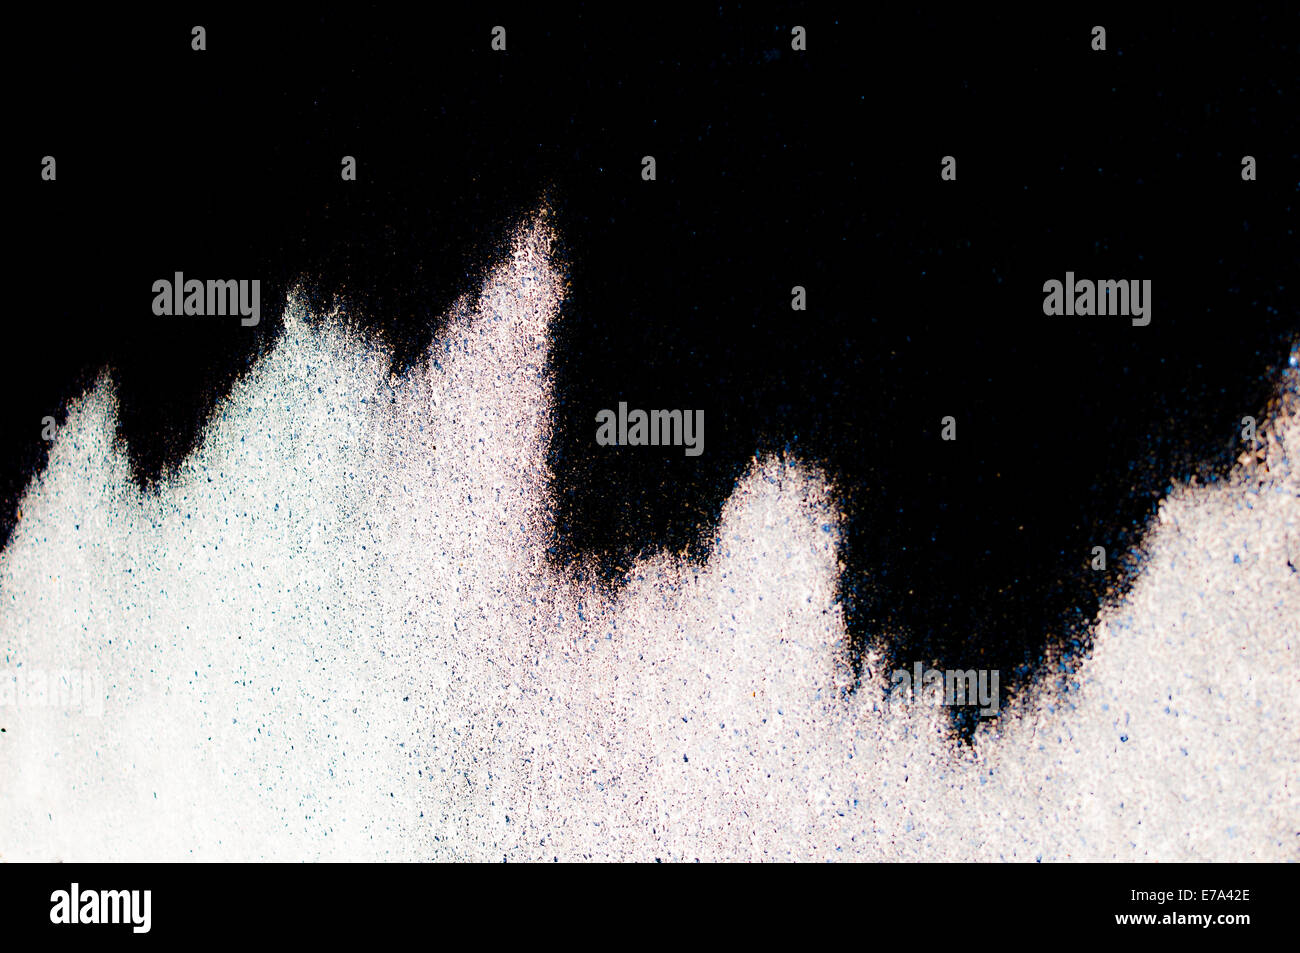 Abstract background of tan lines on black background - Stock Image